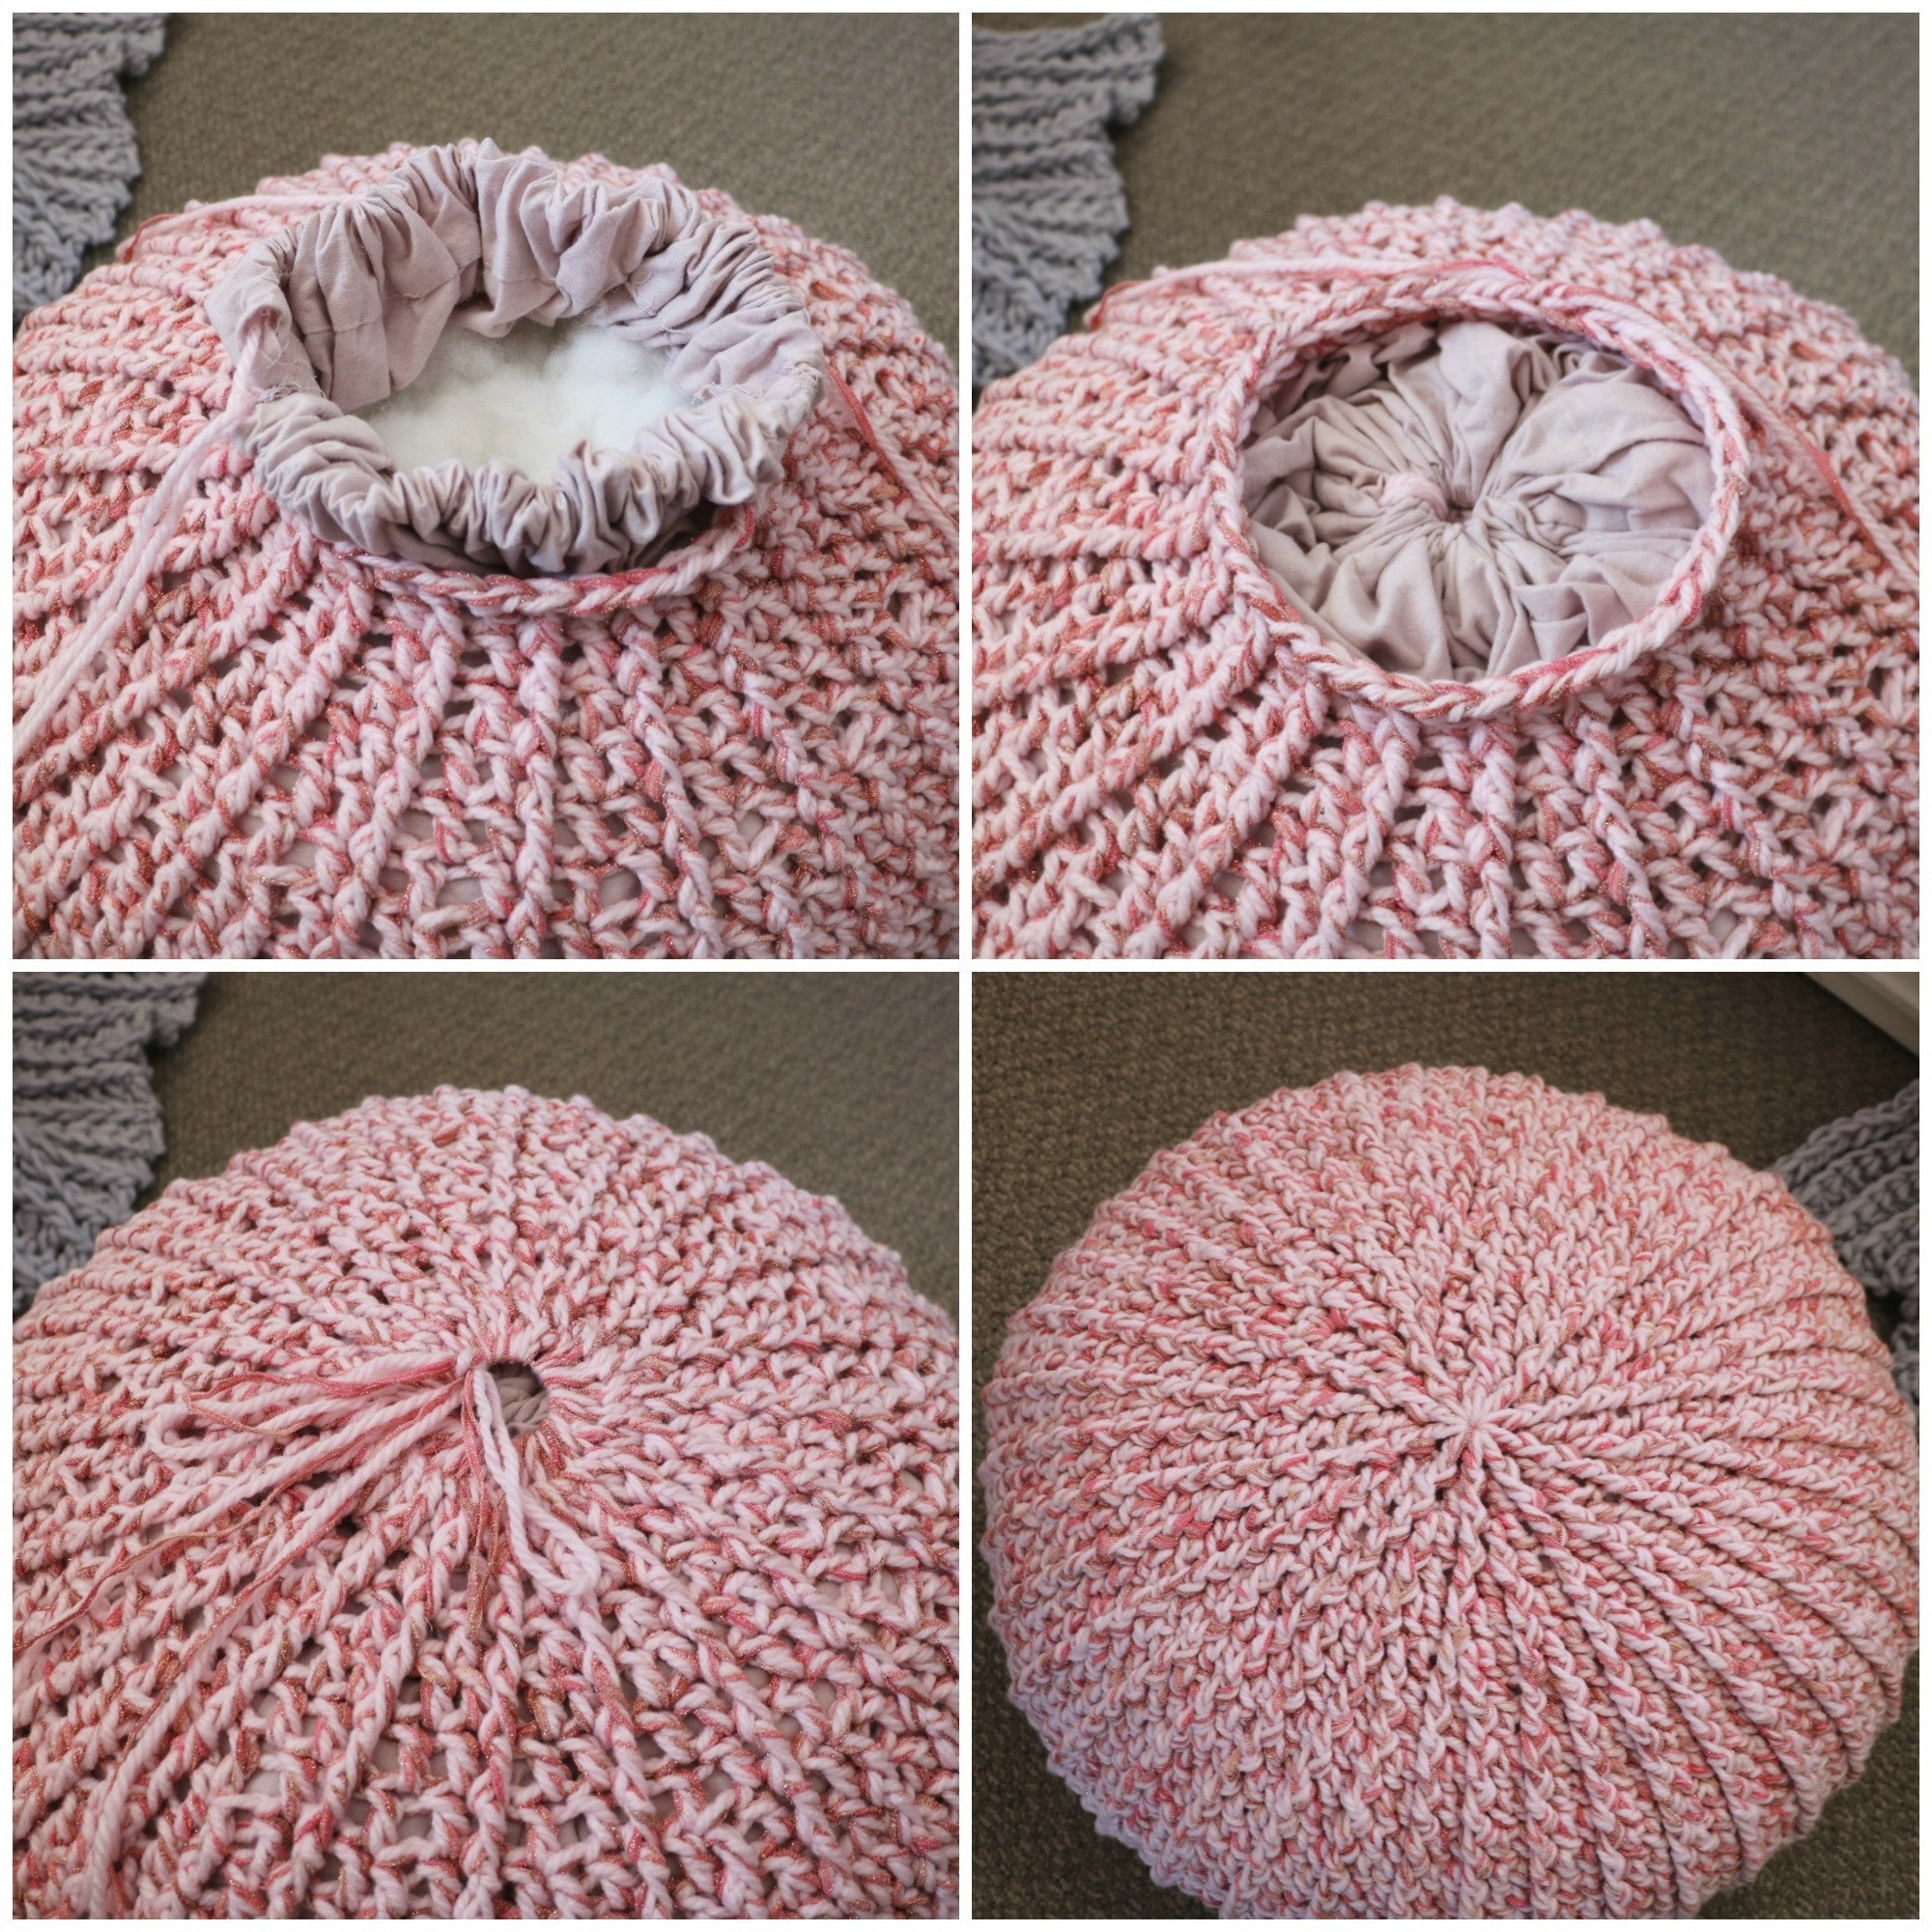 Surprising Free Crochet Floor Pouf Tutorial Mjs Off The Hook Designs Pdpeps Interior Chair Design Pdpepsorg